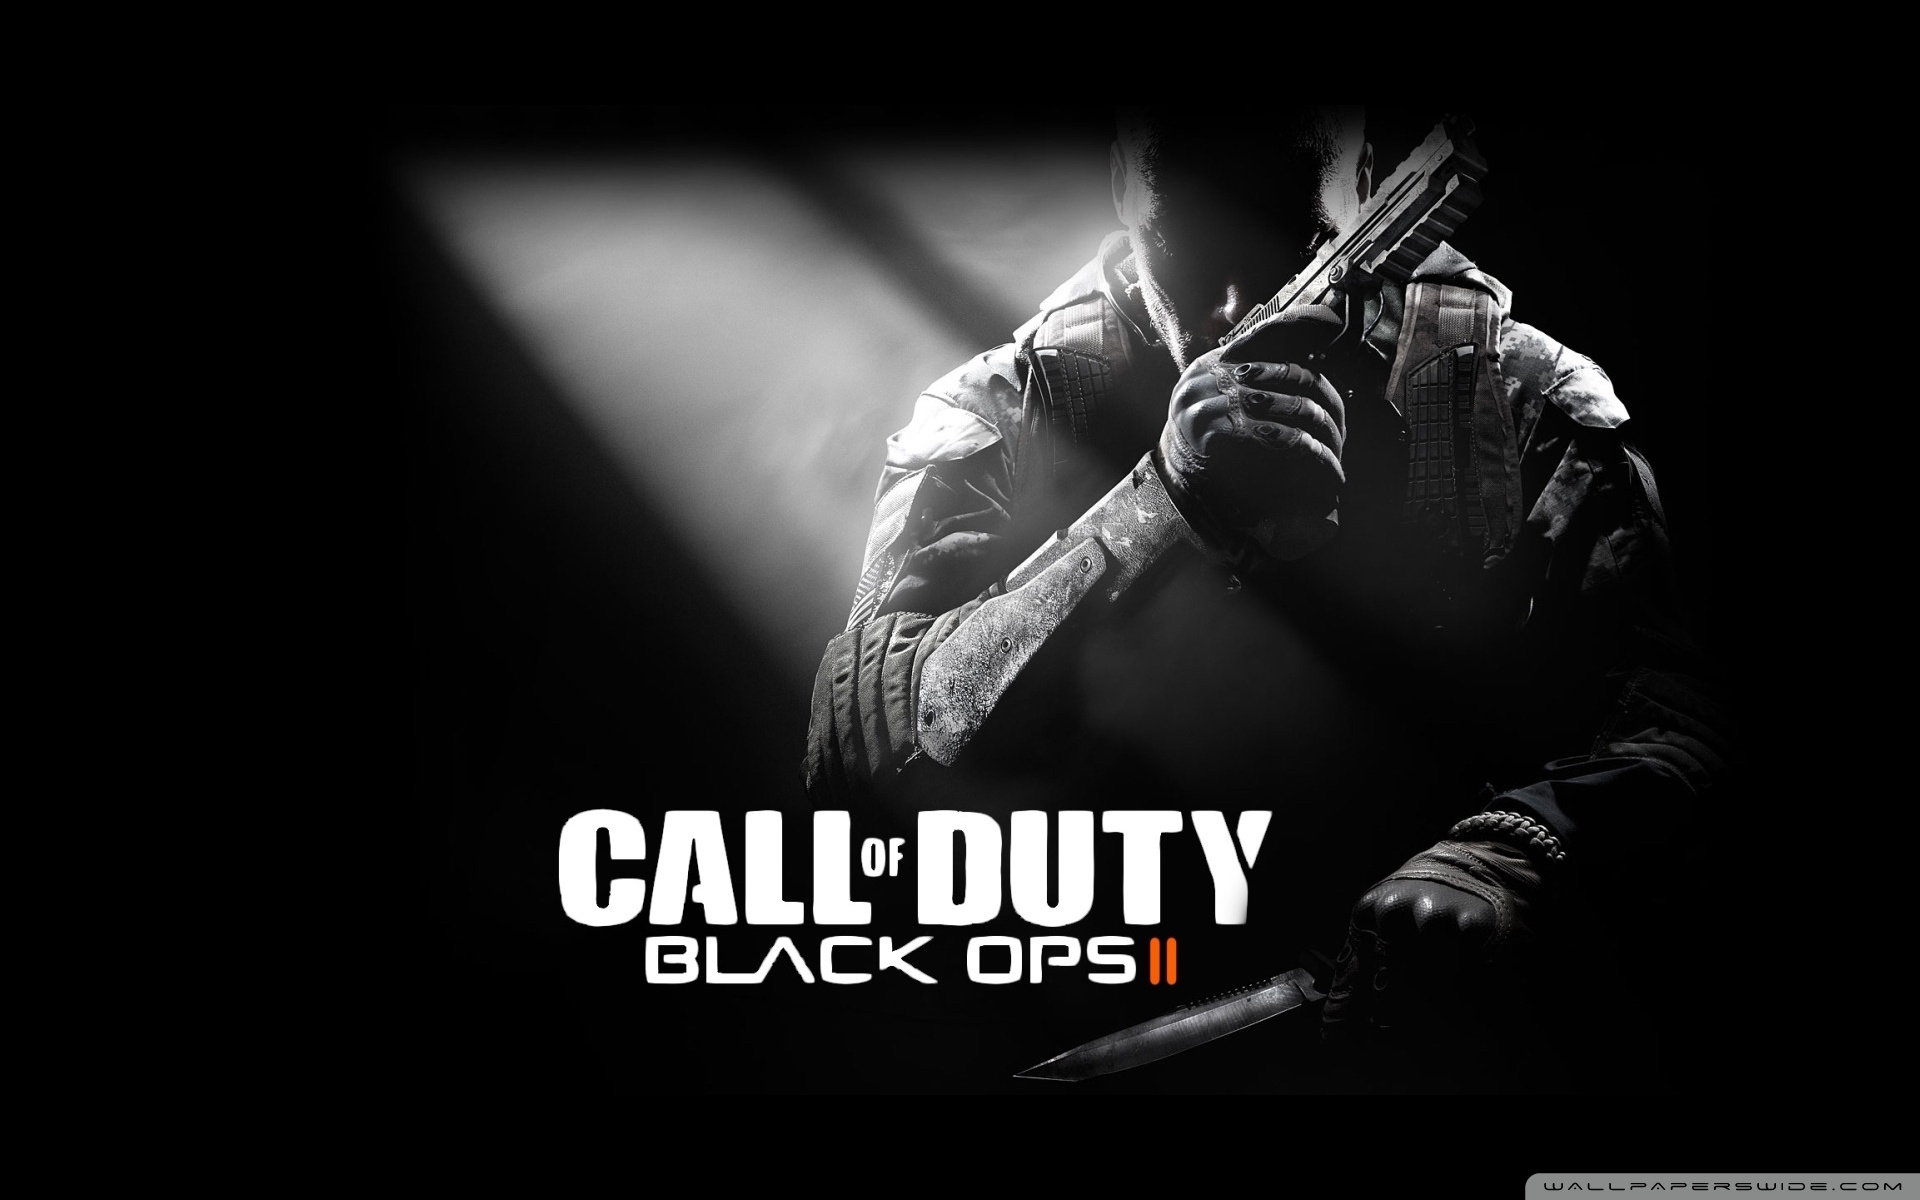 wallpaperswide ❤ call of duty hd desktop wallpapers for 4k